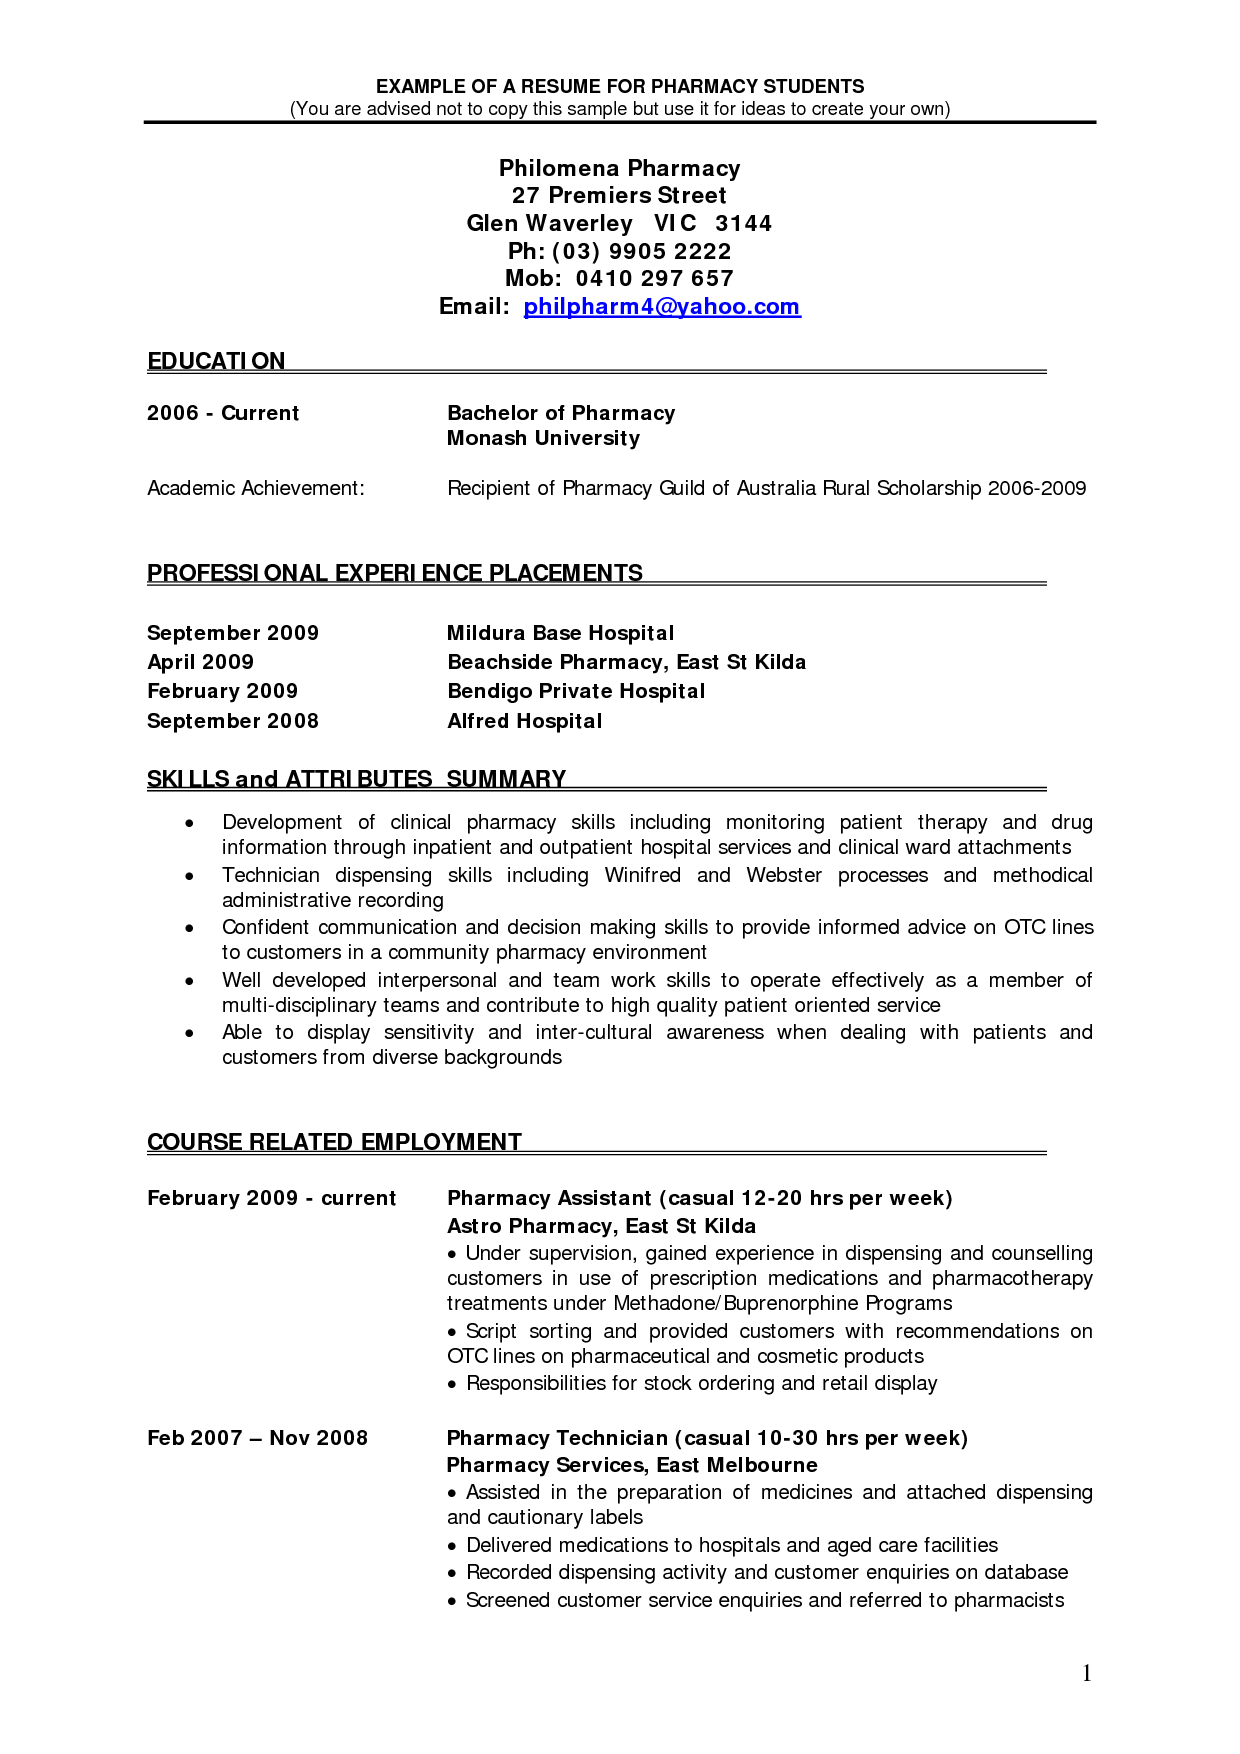 Resume Examples Me Nbspthis Website Is For Sale Nbspresume Examples Resources And Information Resume Resume Examples Resume Format